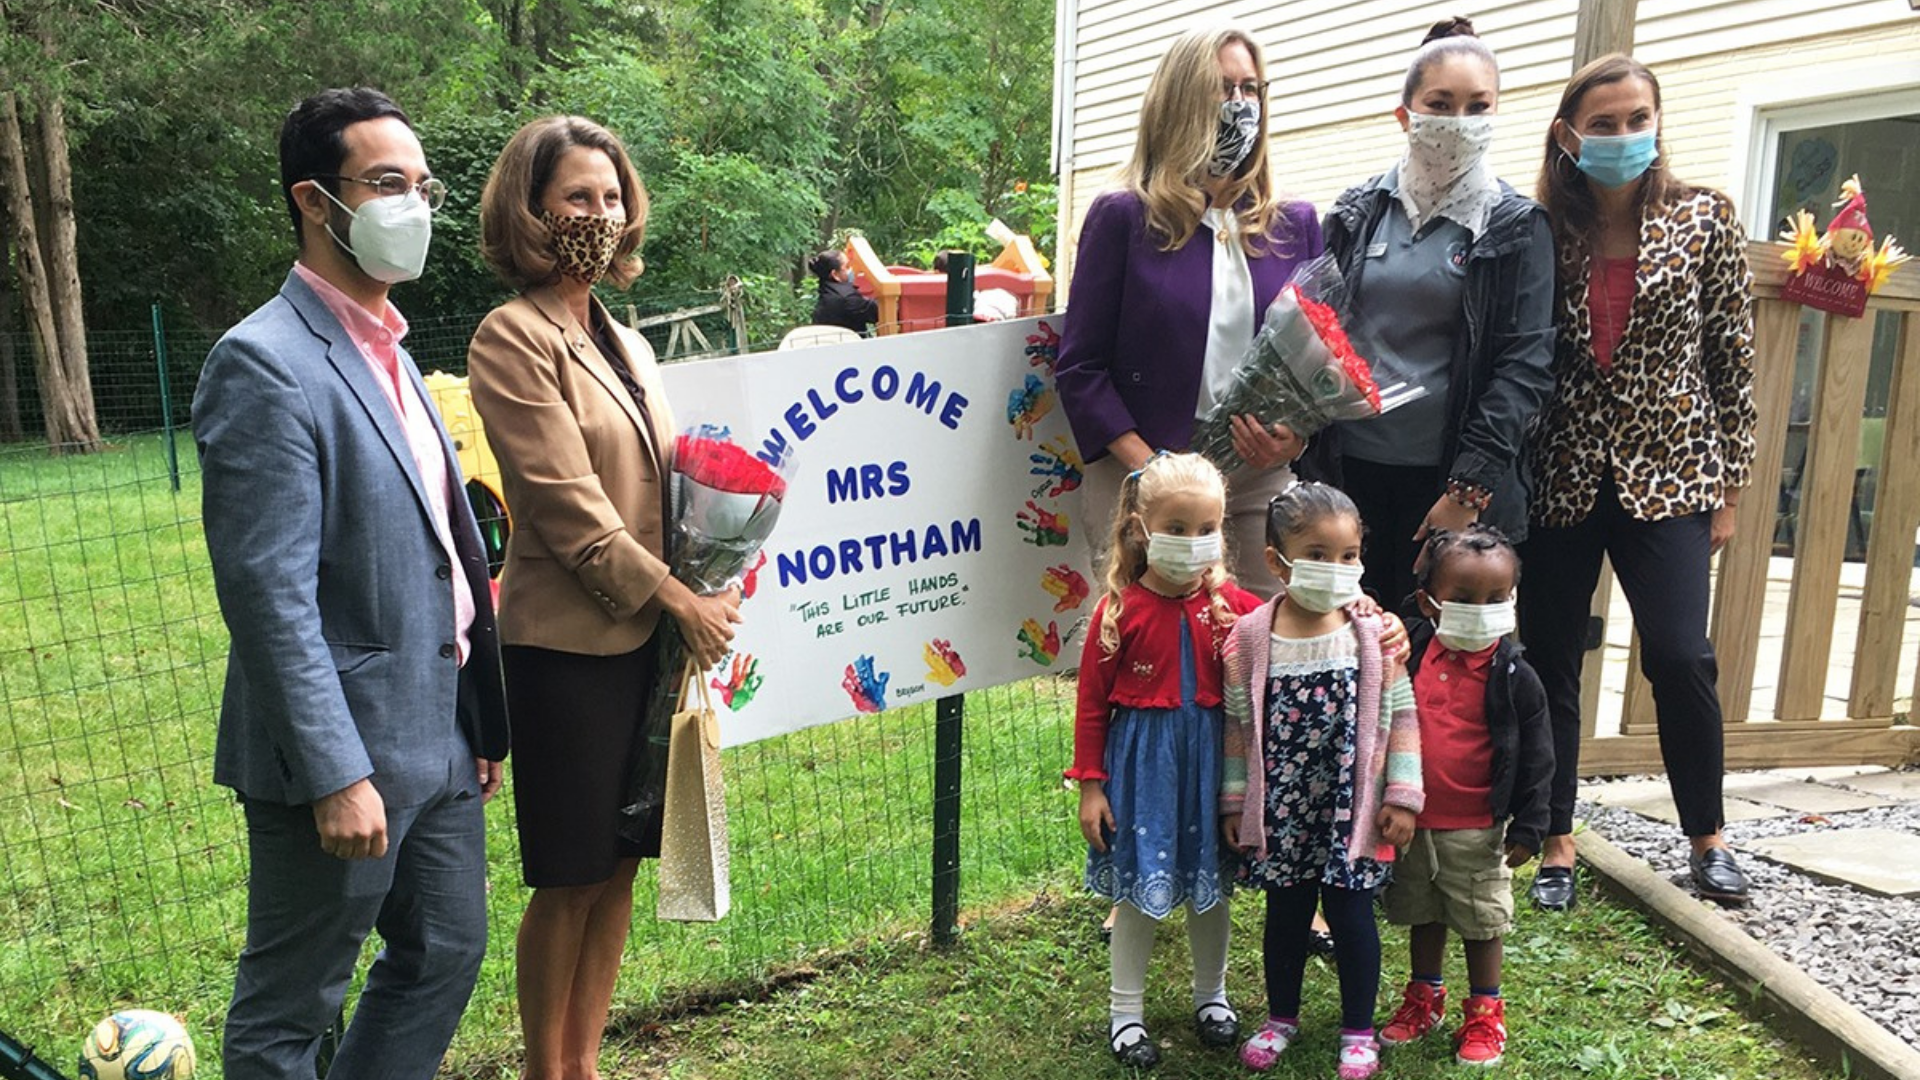 First Lady Northam stands with young children State Delegate Ibraheem Samirah, Congresswoman Jennifer Wexton and Senator Janet Howell's legislative staff.